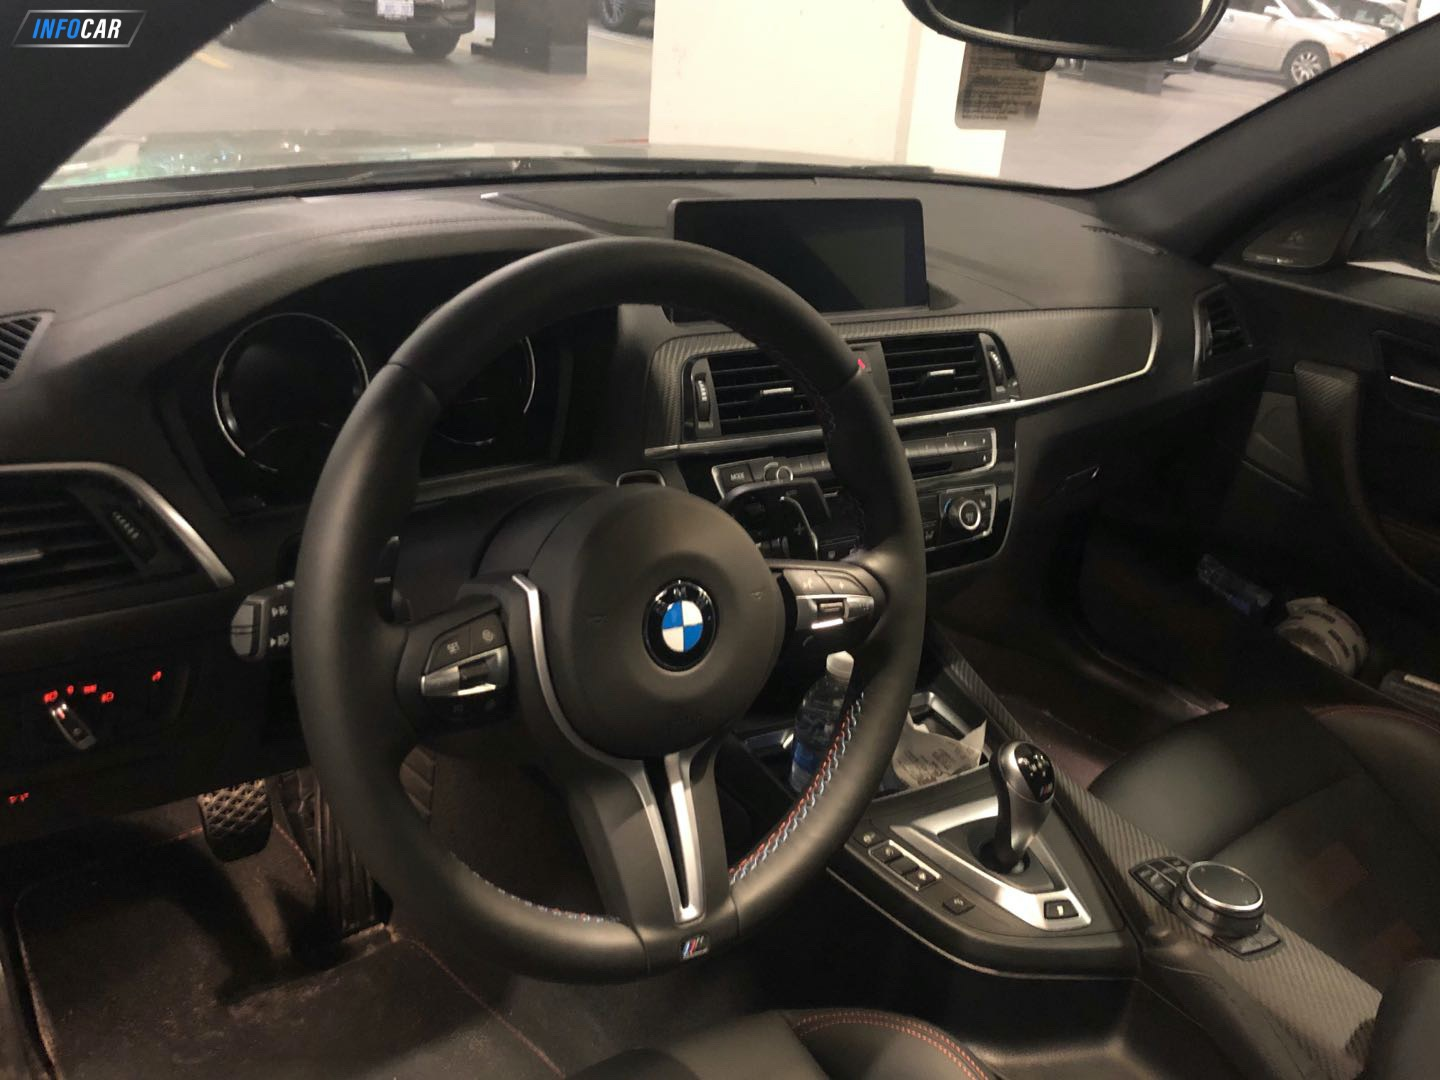 2020 BMW M2 competition - INFOCAR - Toronto's Most Comprehensive New and Used Auto Trading Platform